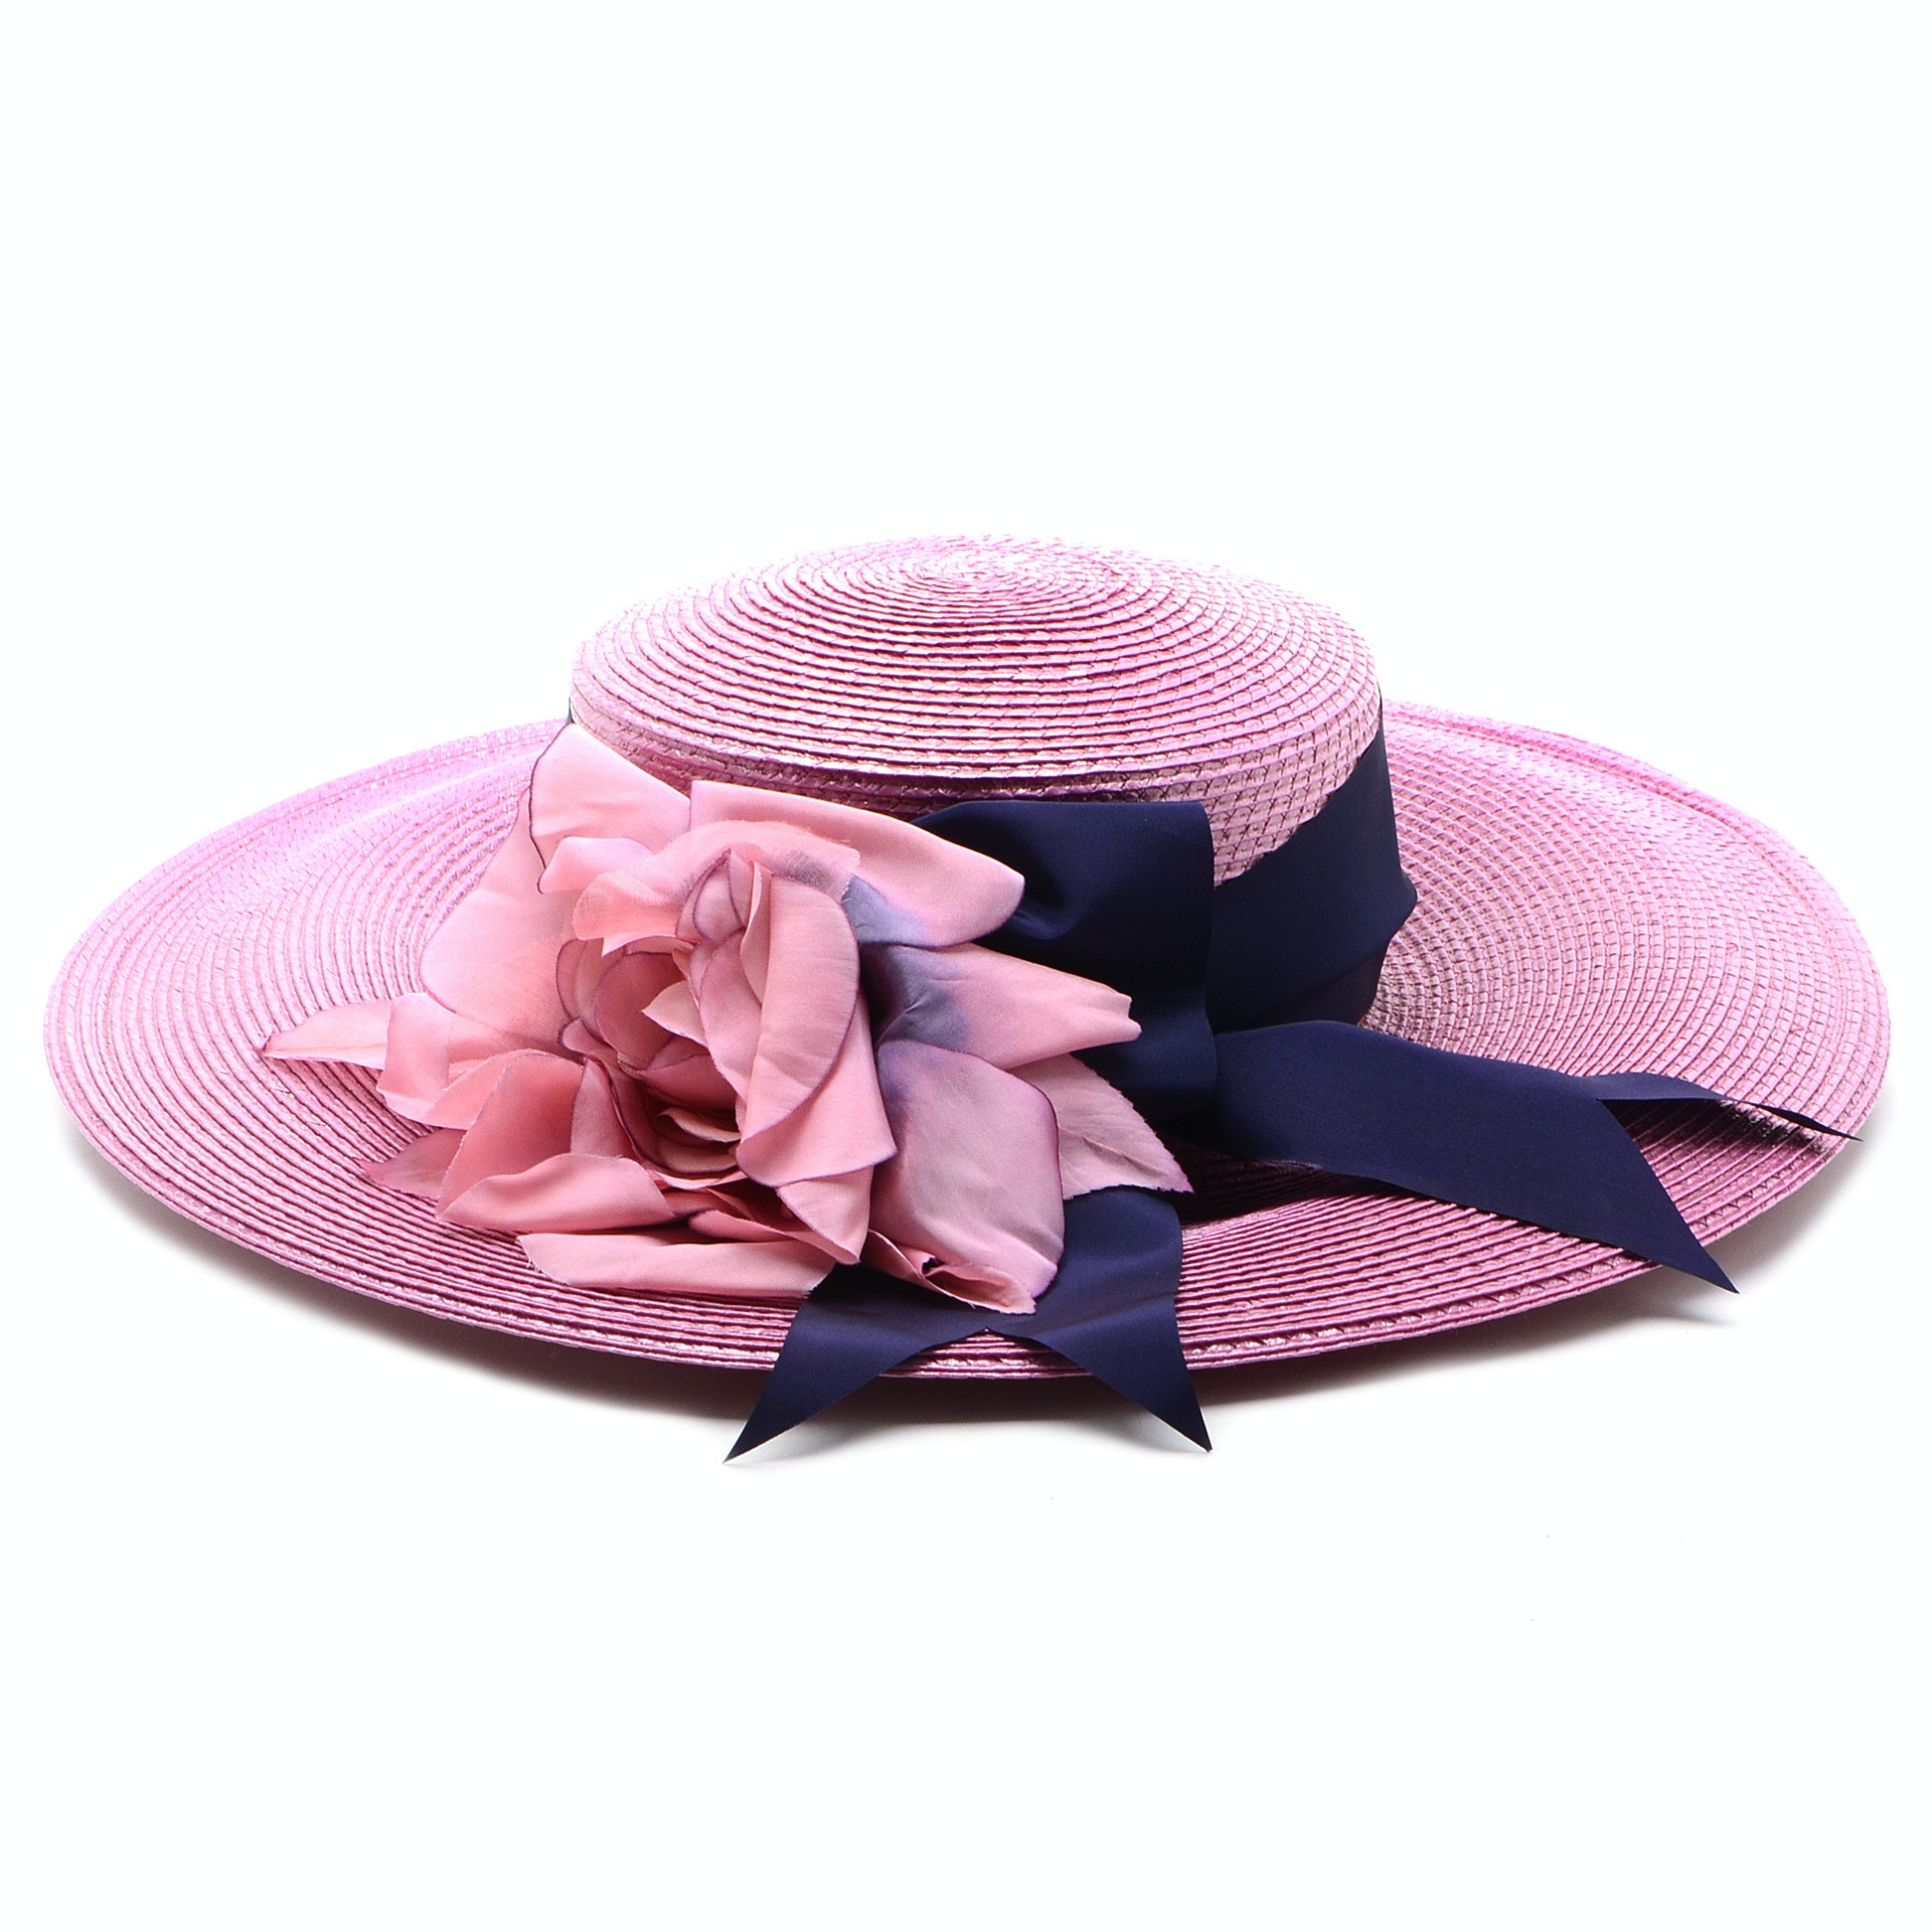 Paula Del Percio of East Hampton Fine Custom Millinery Cellophane Hat with Wide Grosgrain Indigo Ribbon and Dyed Floral